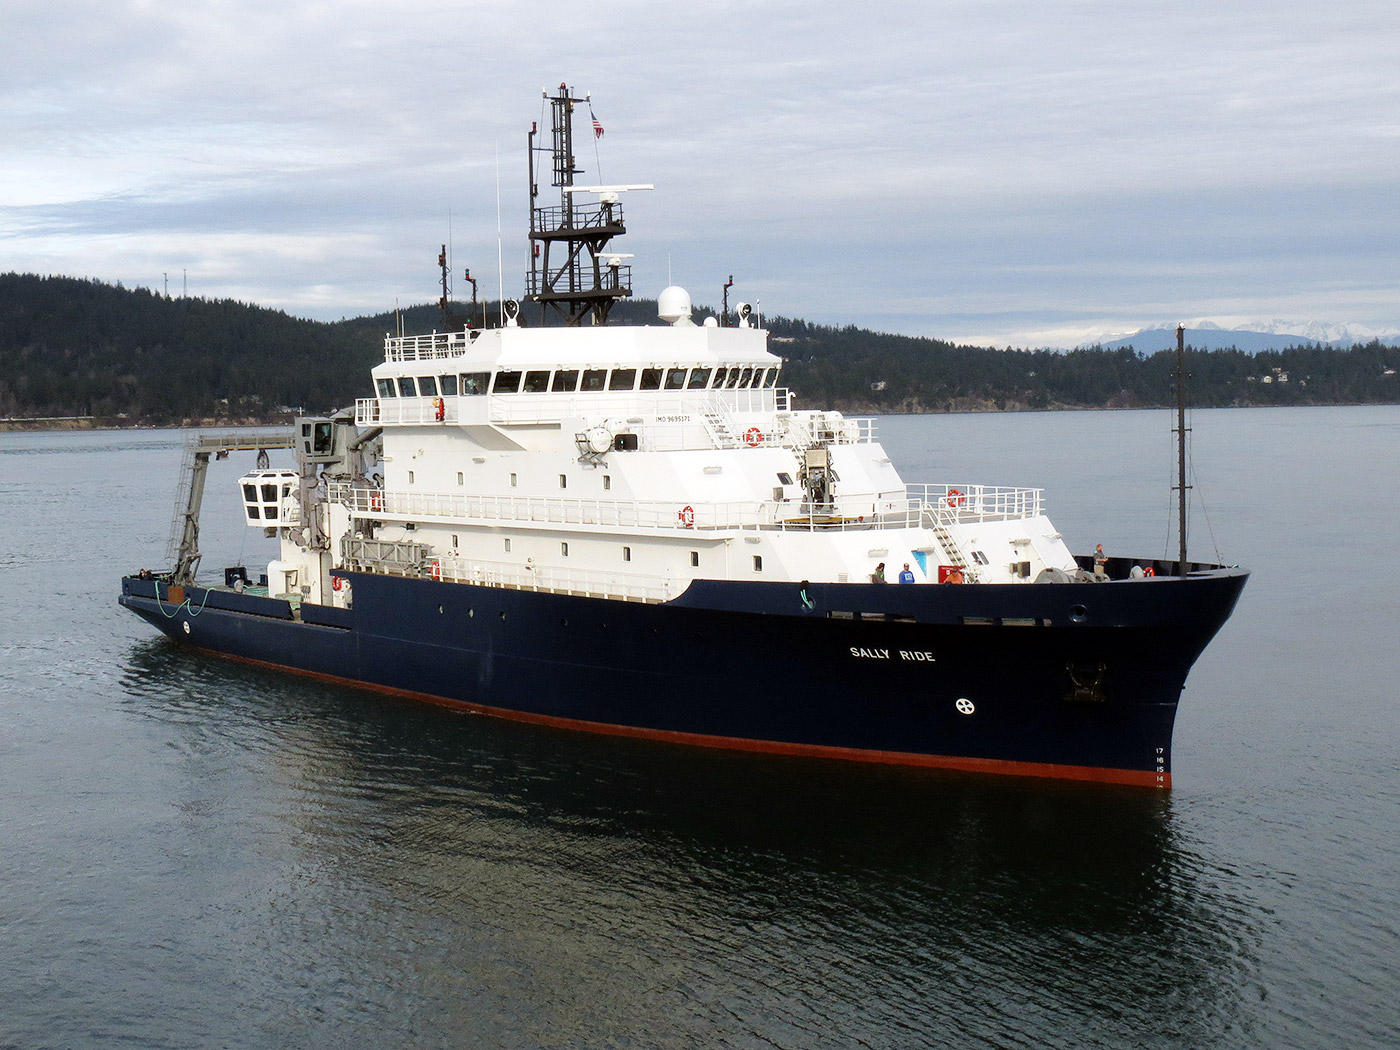 Auxiliary General Oceanographic Research Vessel built by Dakota Creek